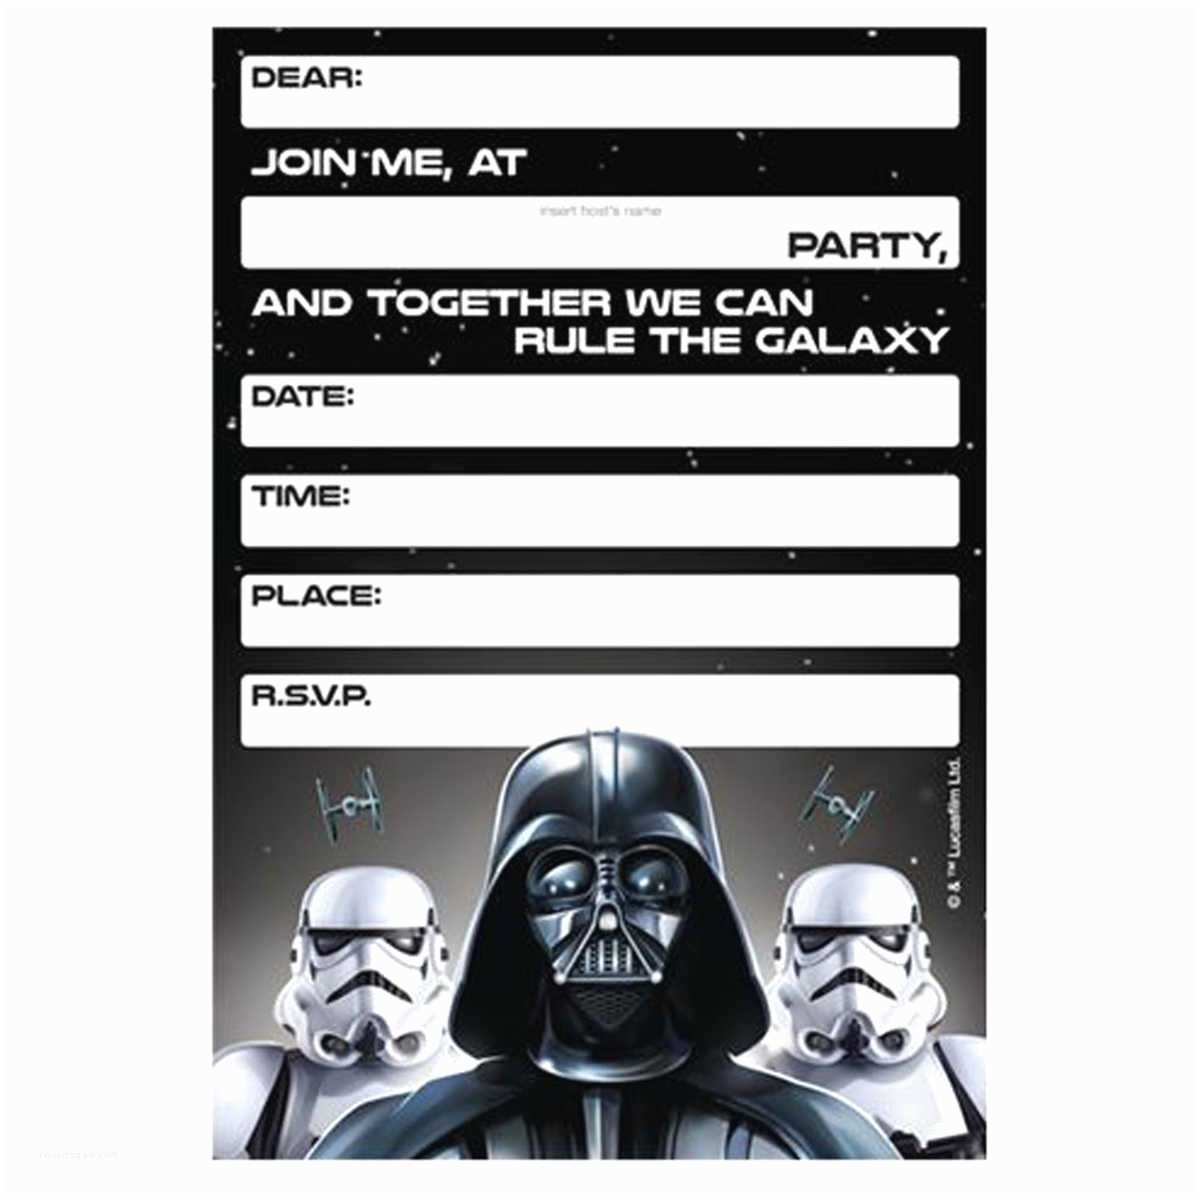 Star Wars Party Invitations Lego Star Wars Birthday Invitations Template – Bagvania